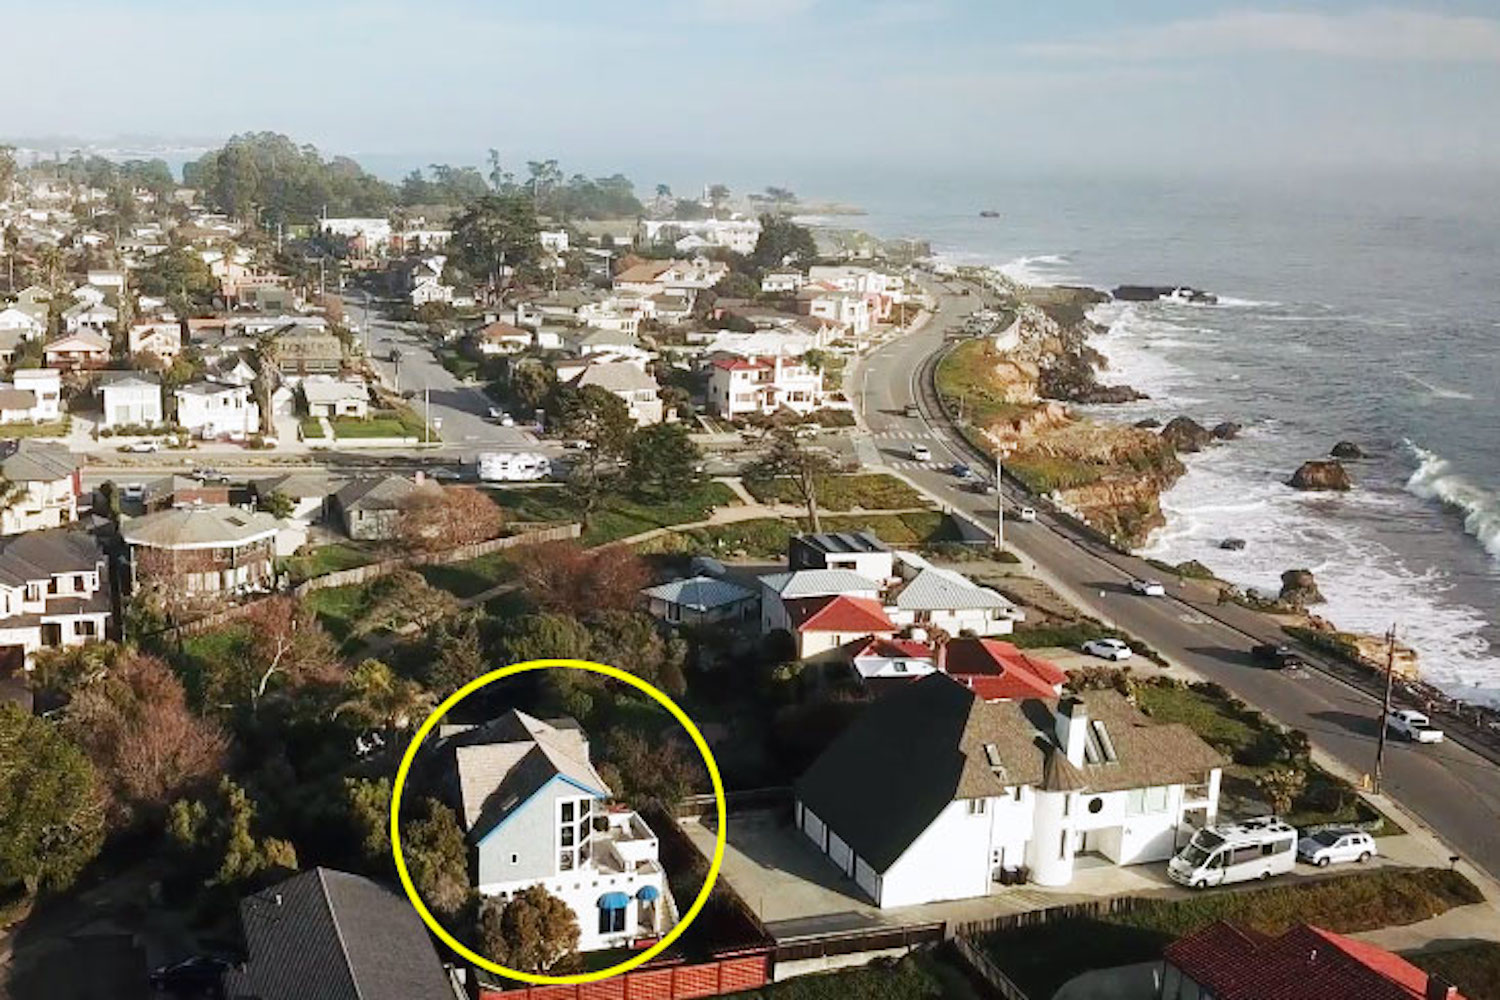 127 bethany curve - close up aerial